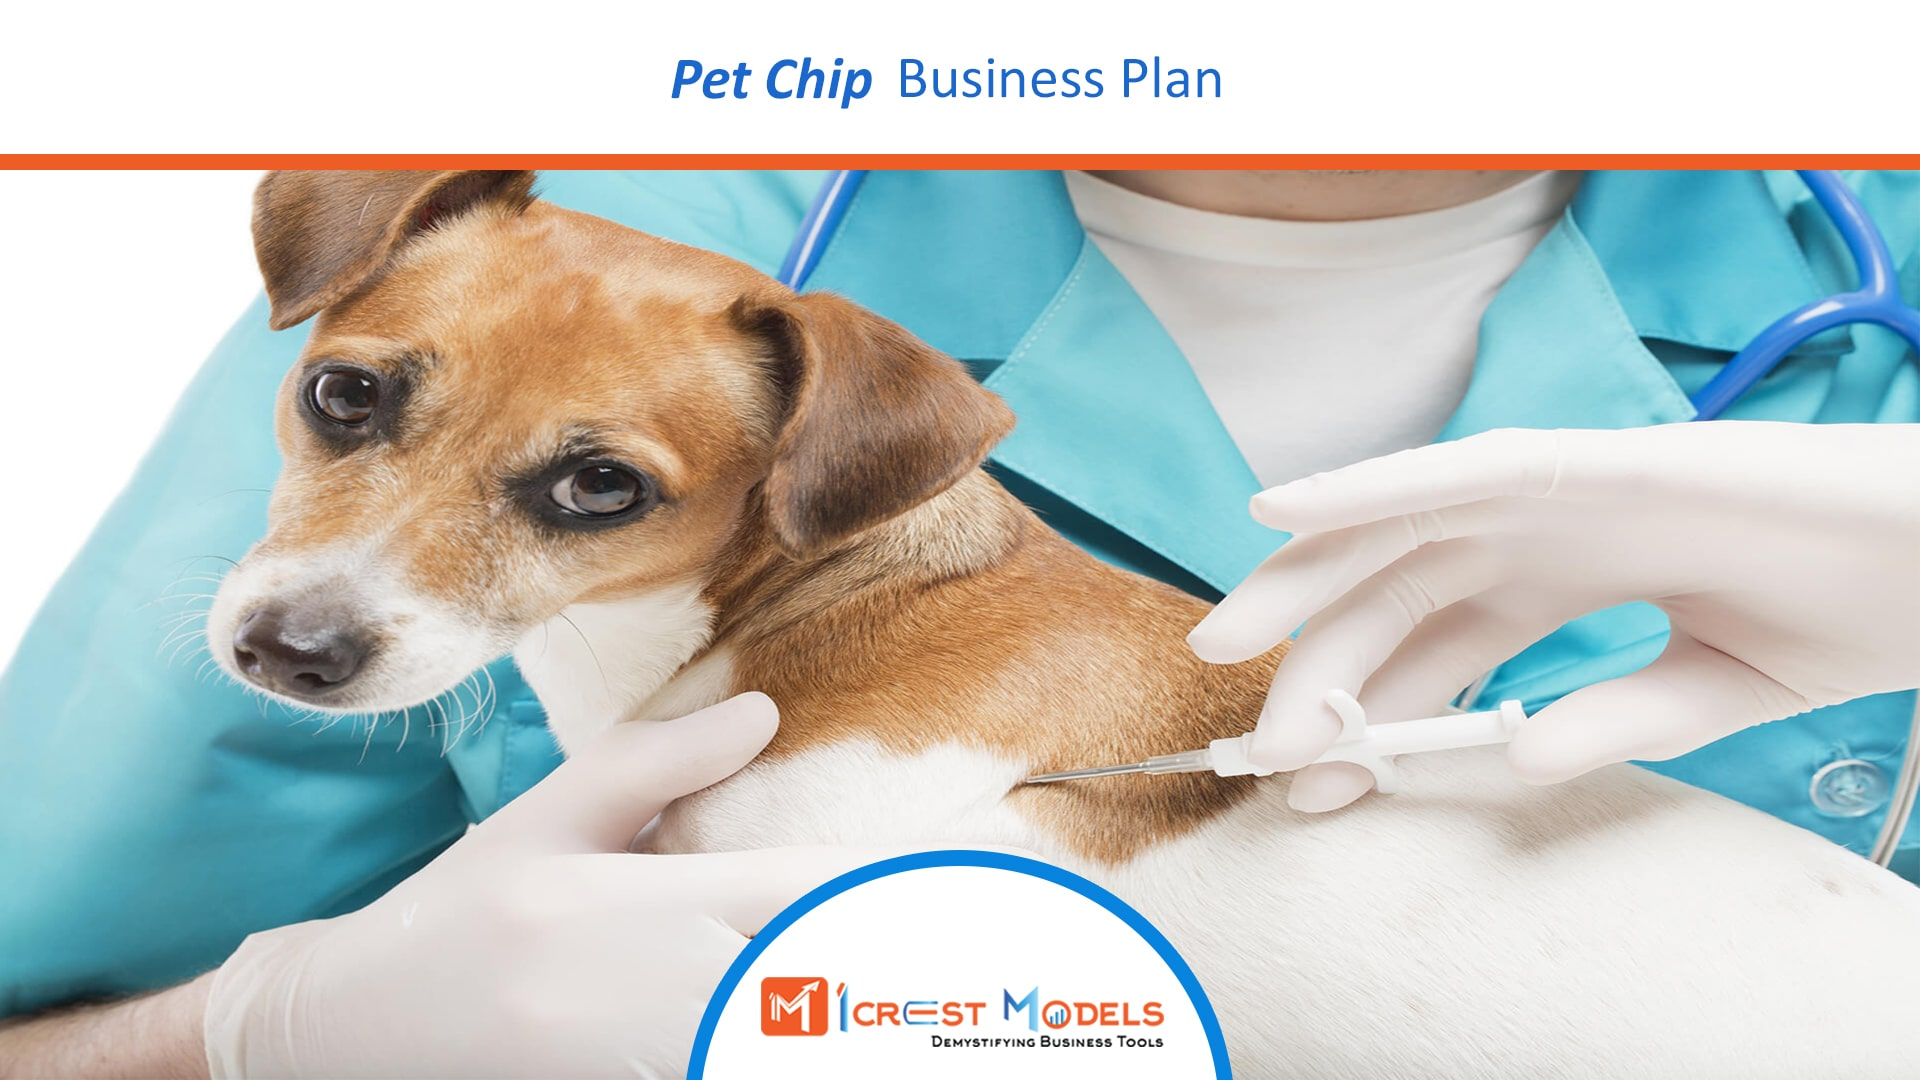 Business Plan For Pet Chip Business